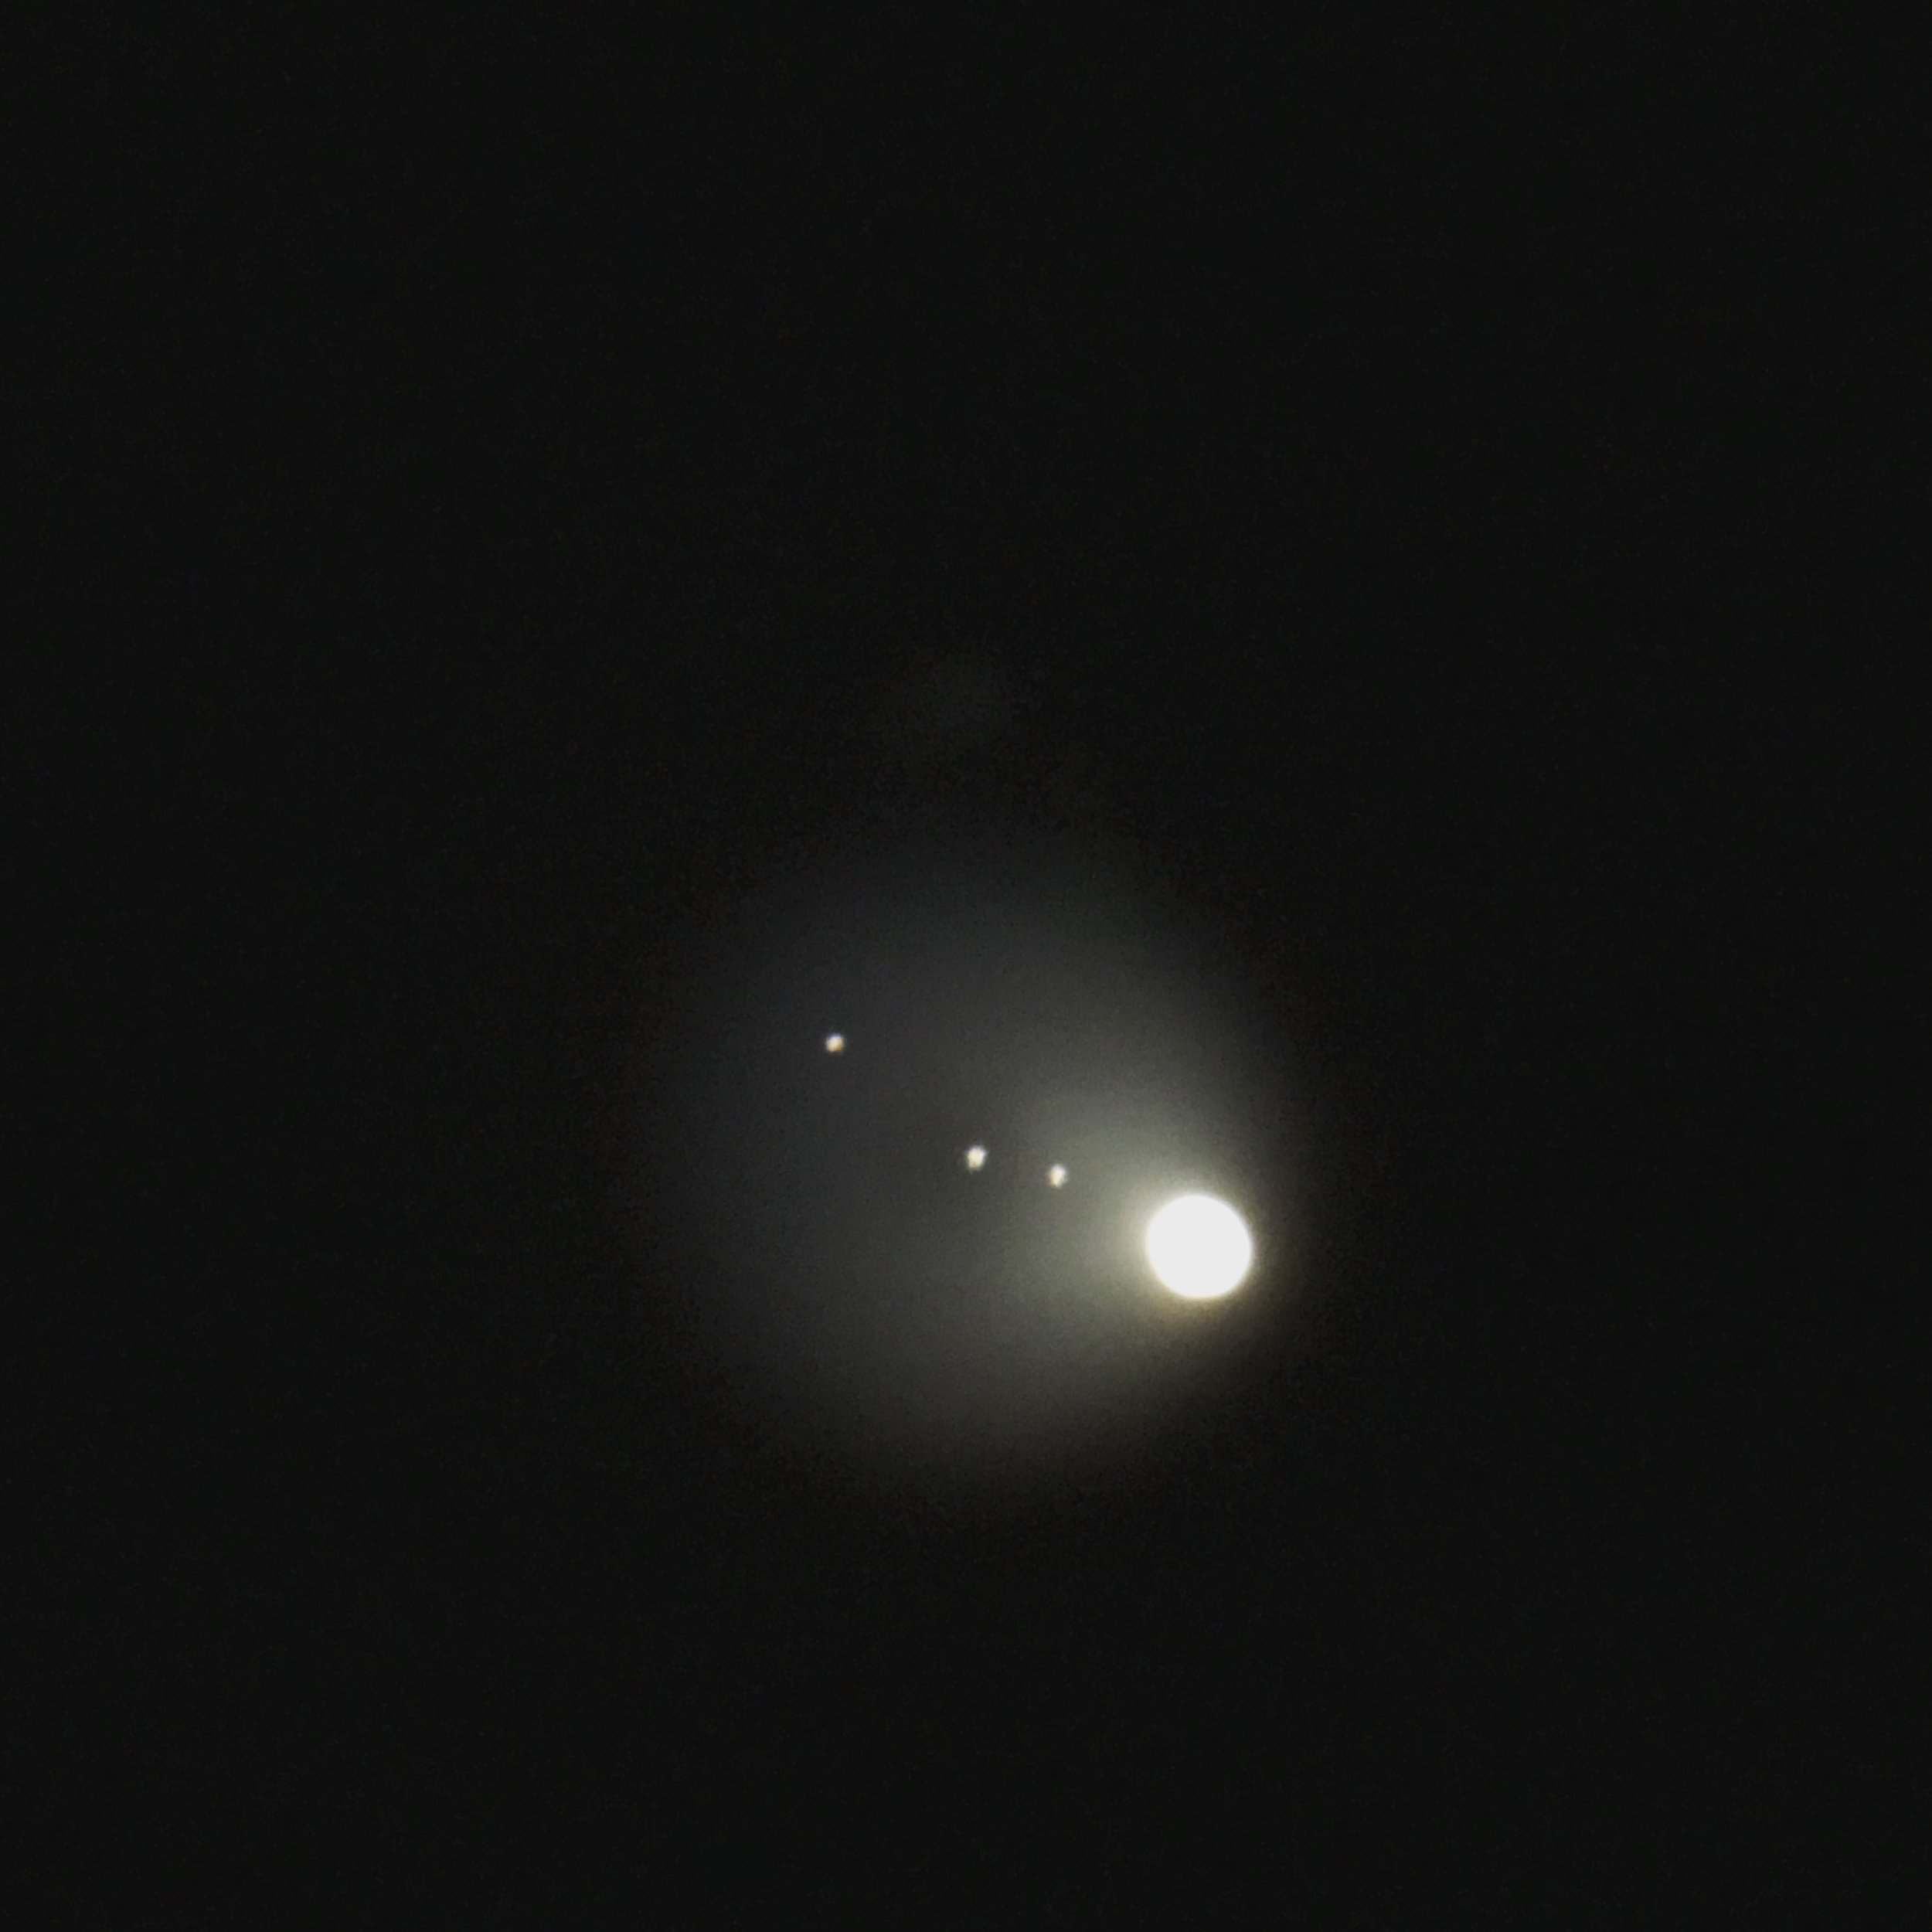 An i-phone photo taken through the telescope at the end of our shoot of Jupiter and her four moons!